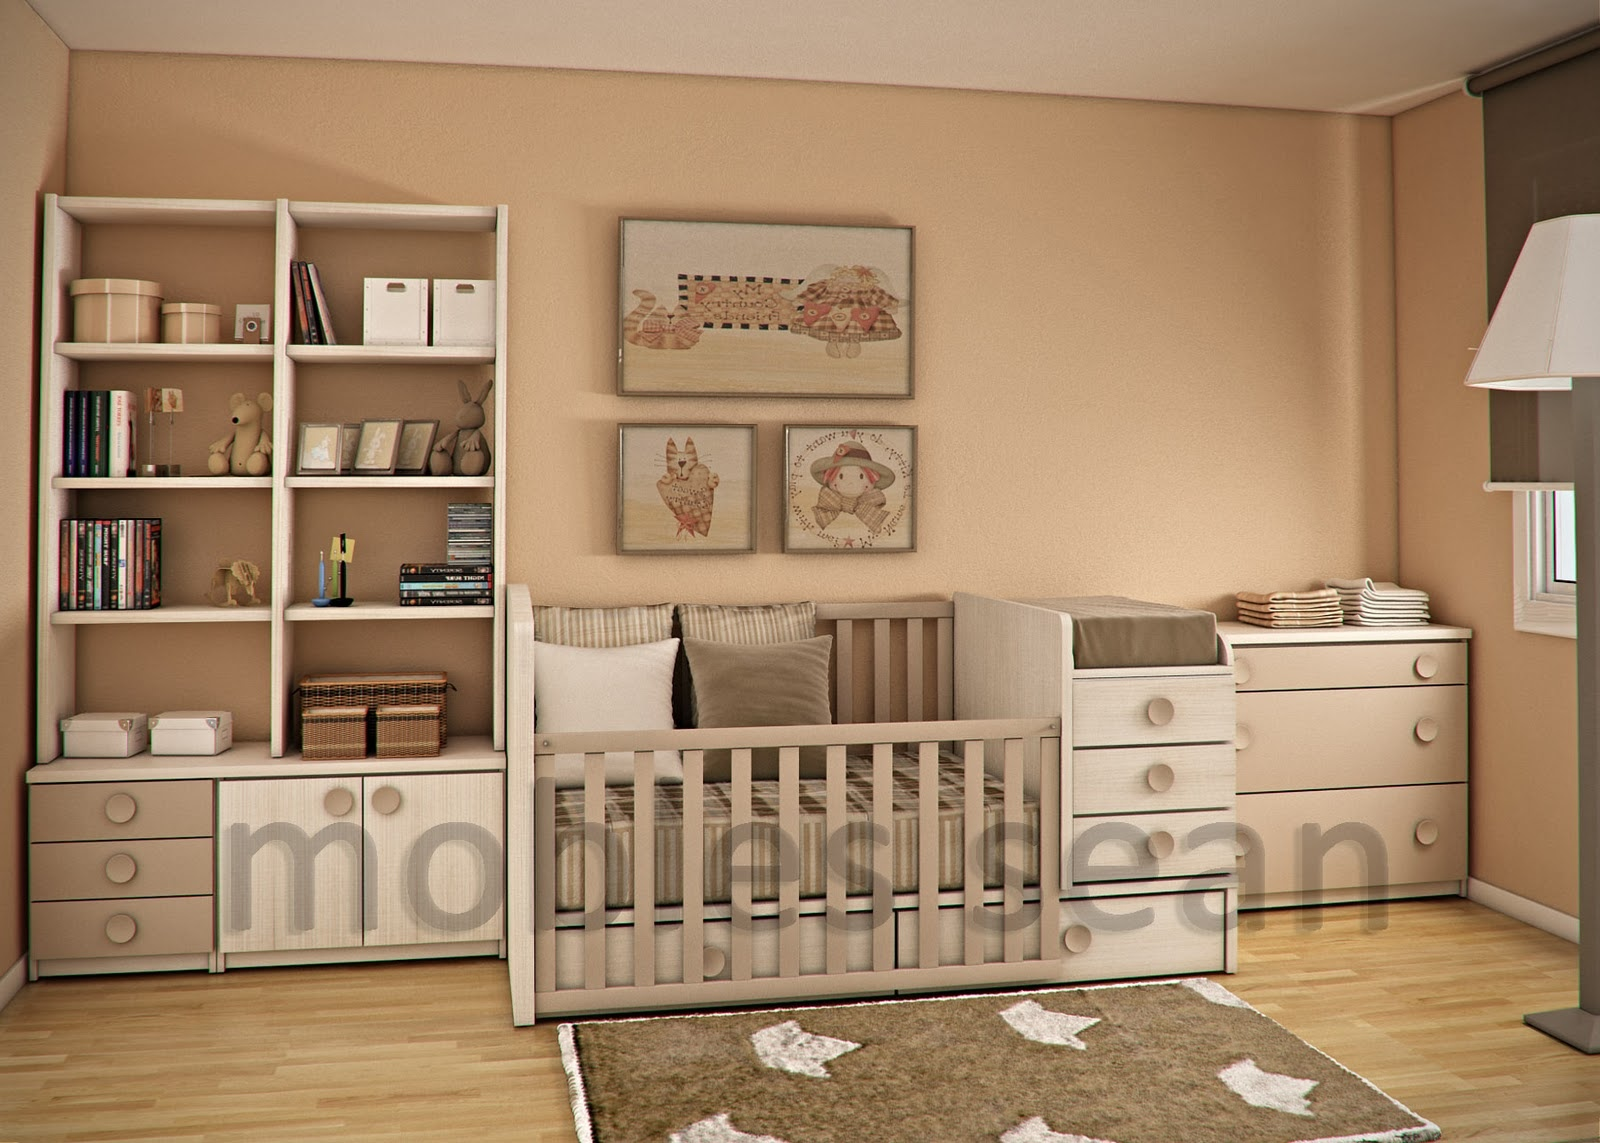 space saving designs for small kids rooms - Small Room Design